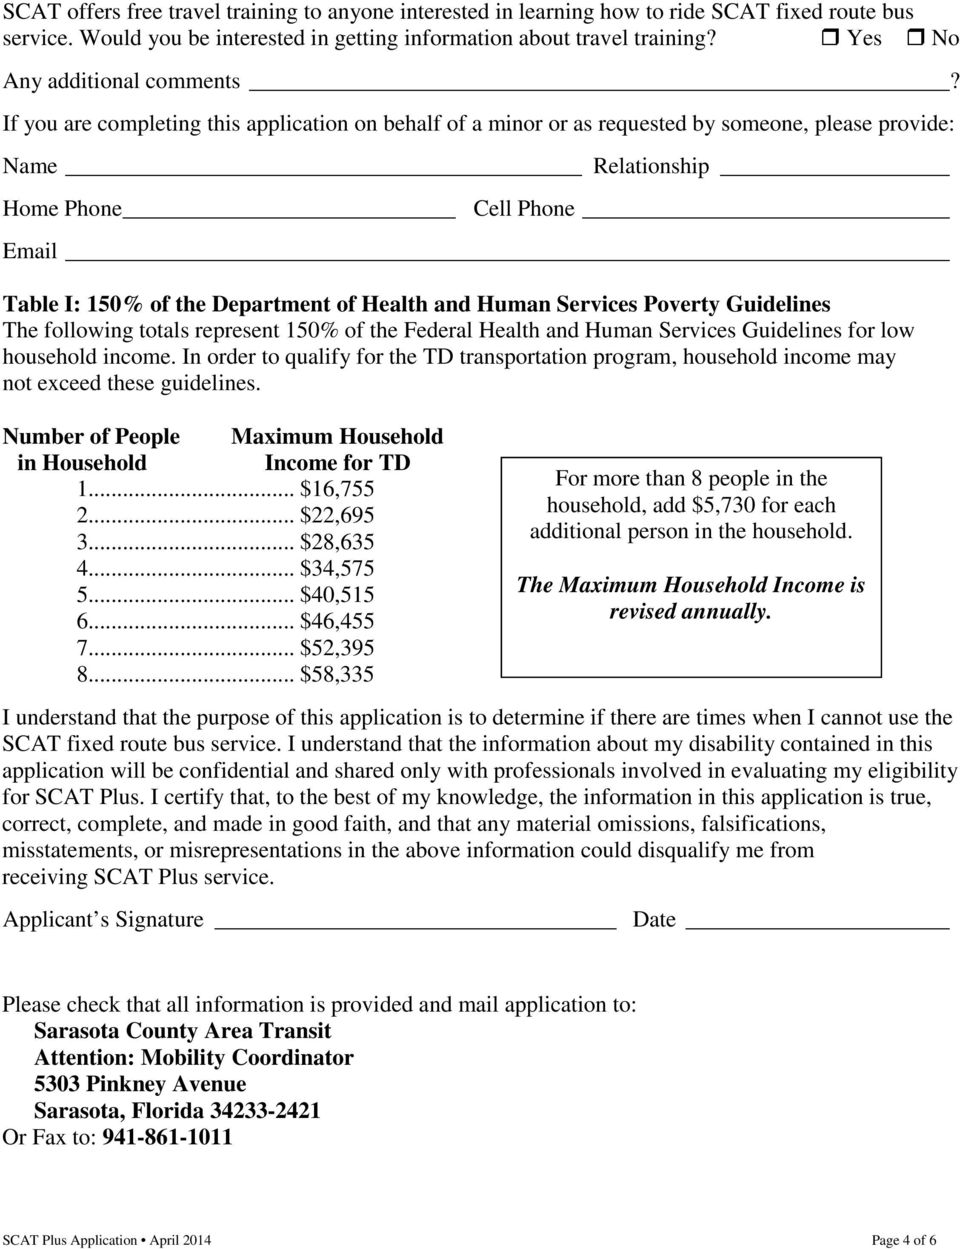 If you are completing this application on behalf of a minor or as requested by someone, please provide: Name Relationship Home Phone Cell Phone Email Table I: 150% of the Department of Health and